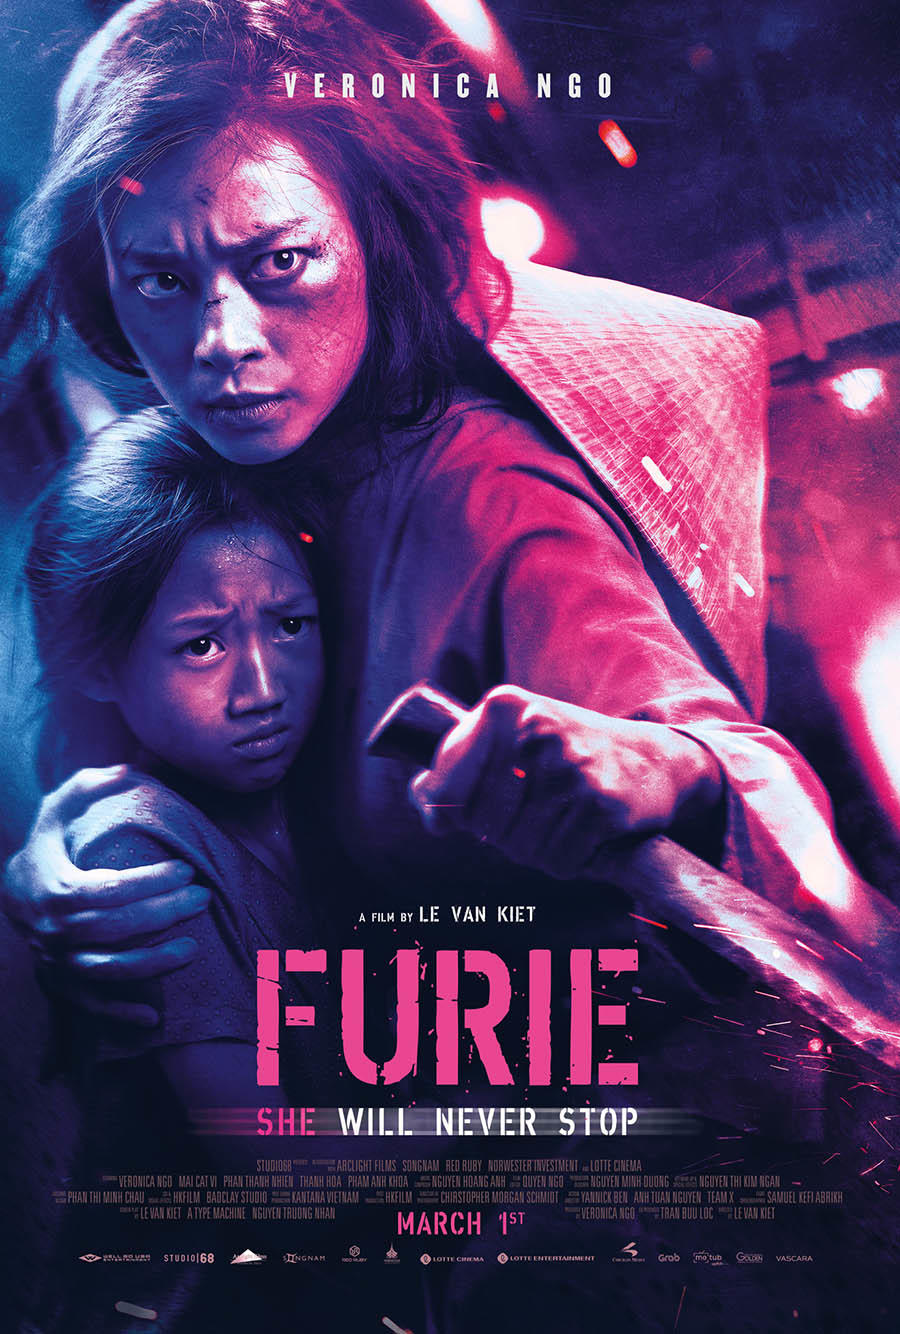 Furie poster art